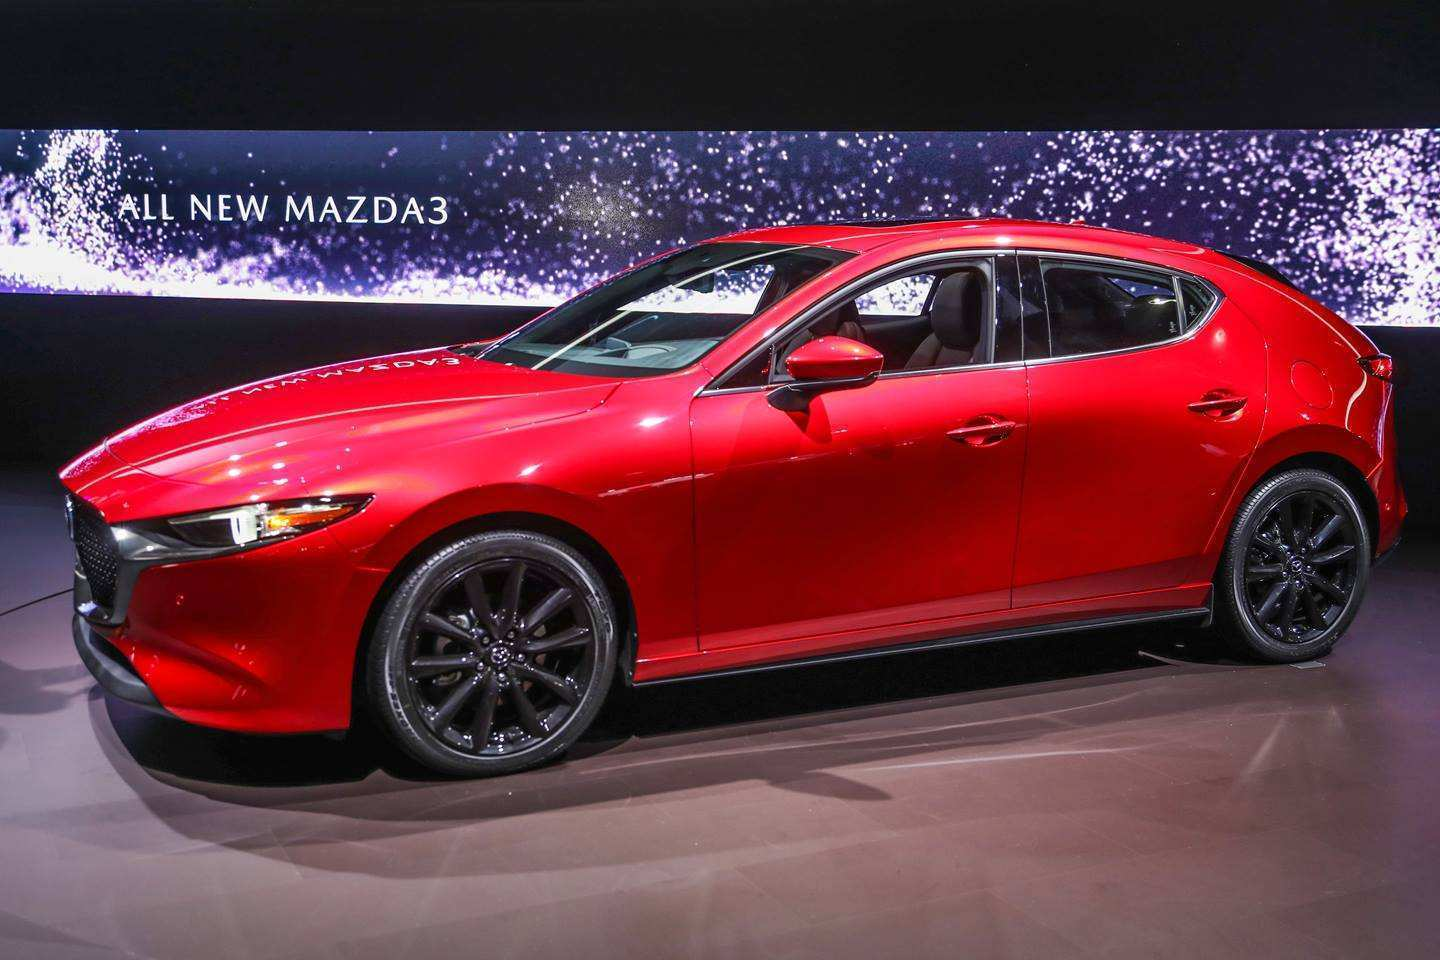 77 The Best 2019 Mazdaspeed 3 New Model And Performance